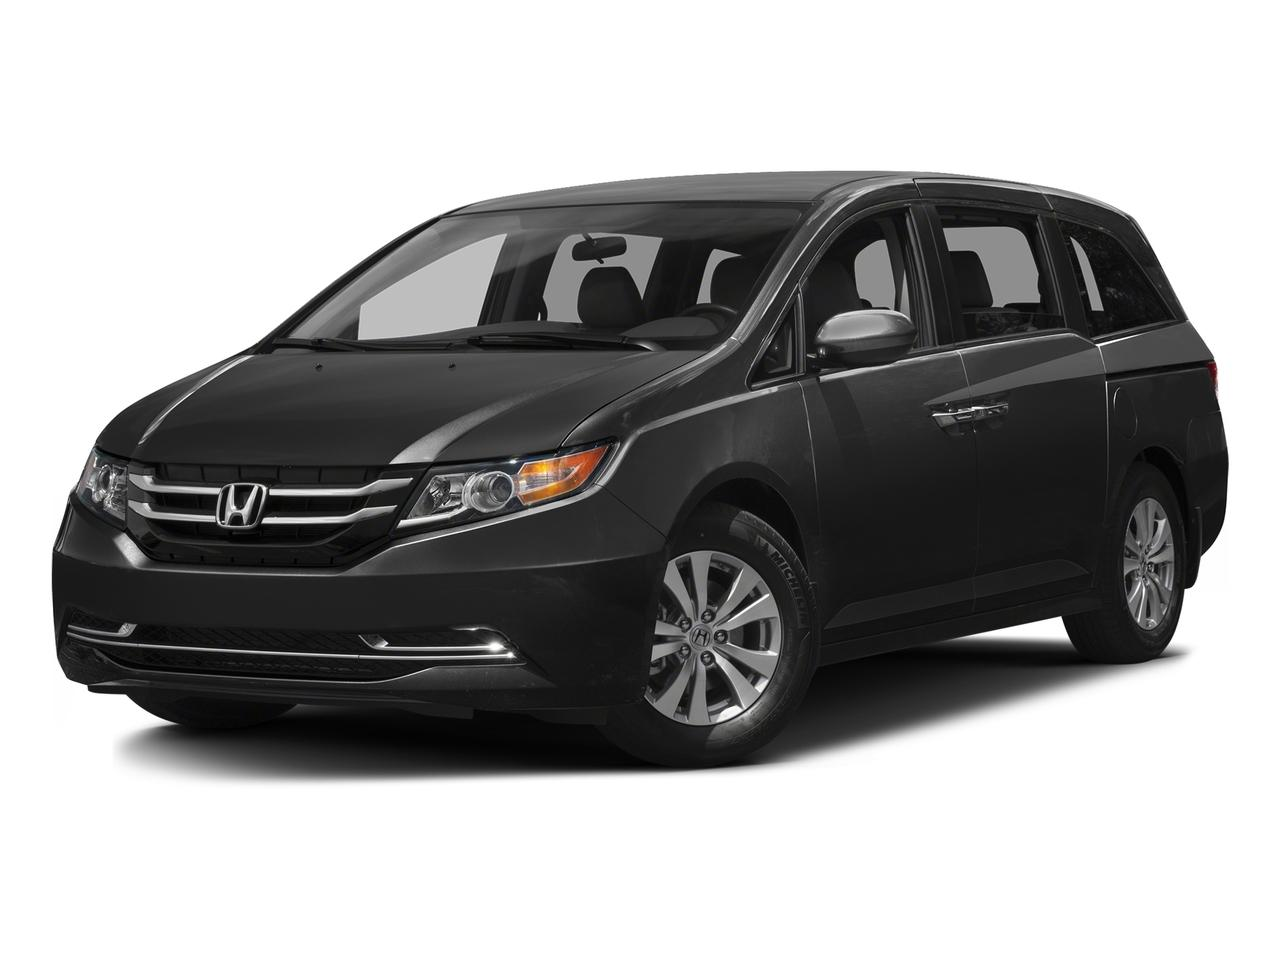 2016 Honda Odyssey Vehicle Photo in Easton, MD 21601